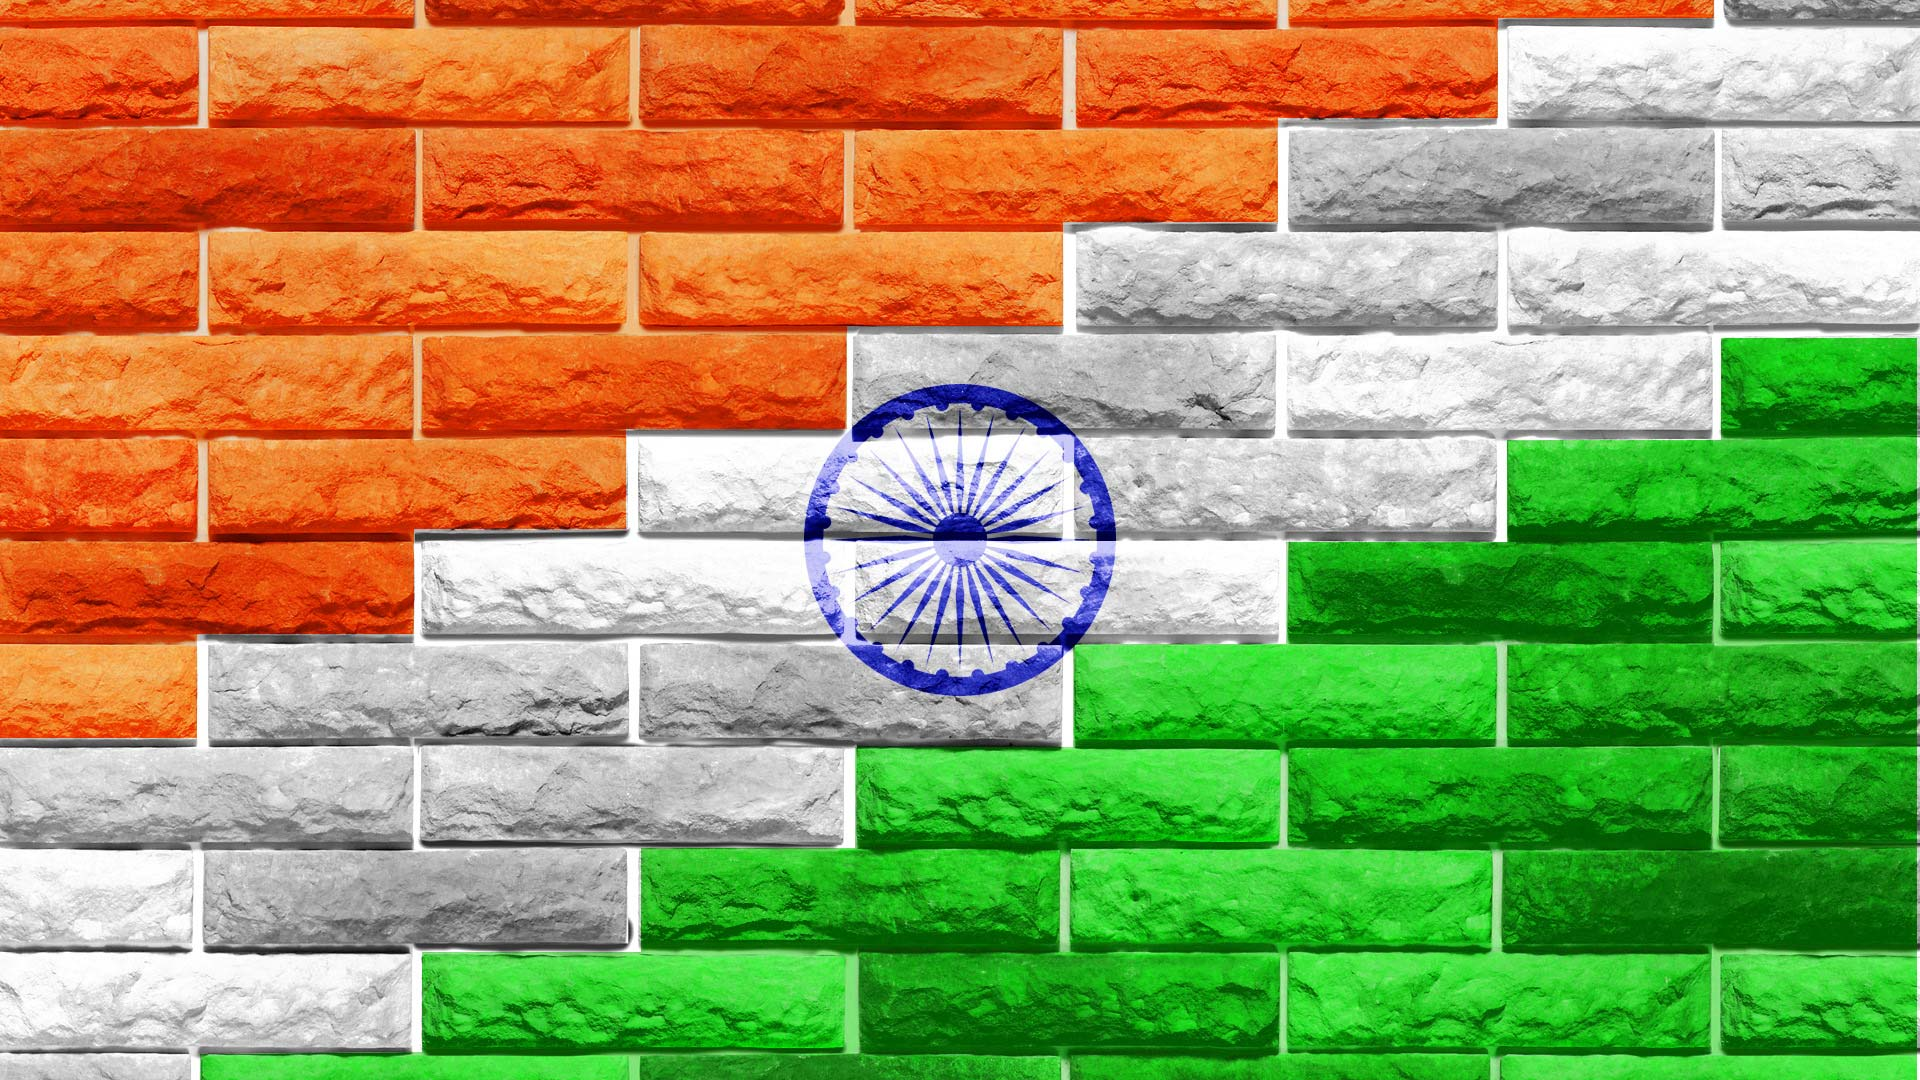 Indian Hd Backgrounds: Indian Flag HD Images Wallpapers Free Download